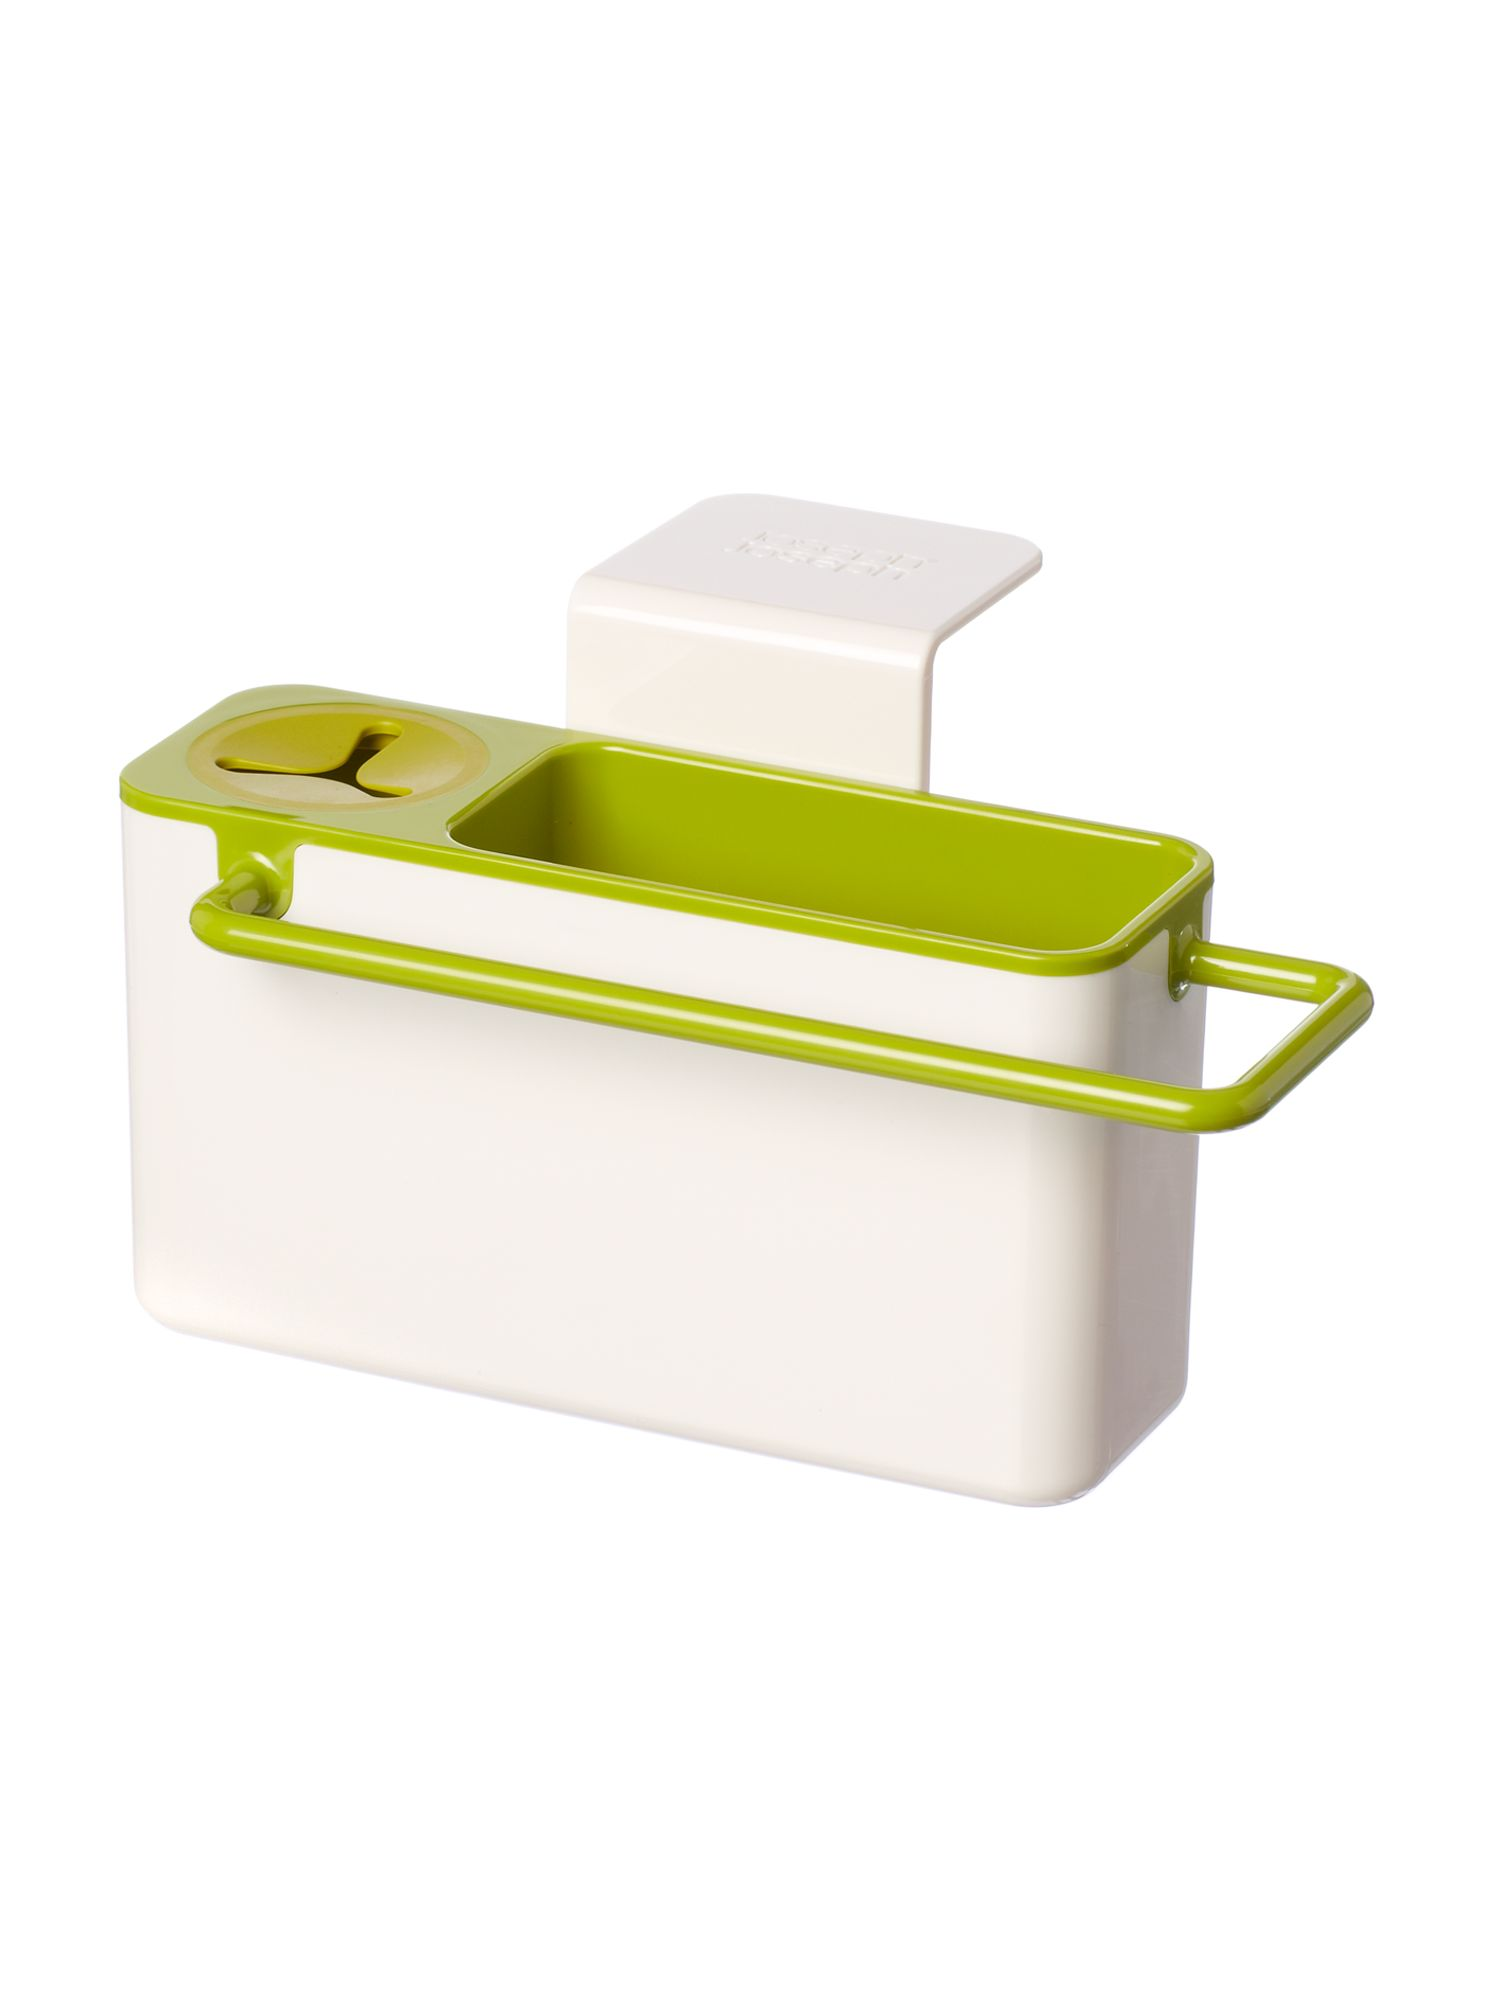 In-sink caddy, white / green